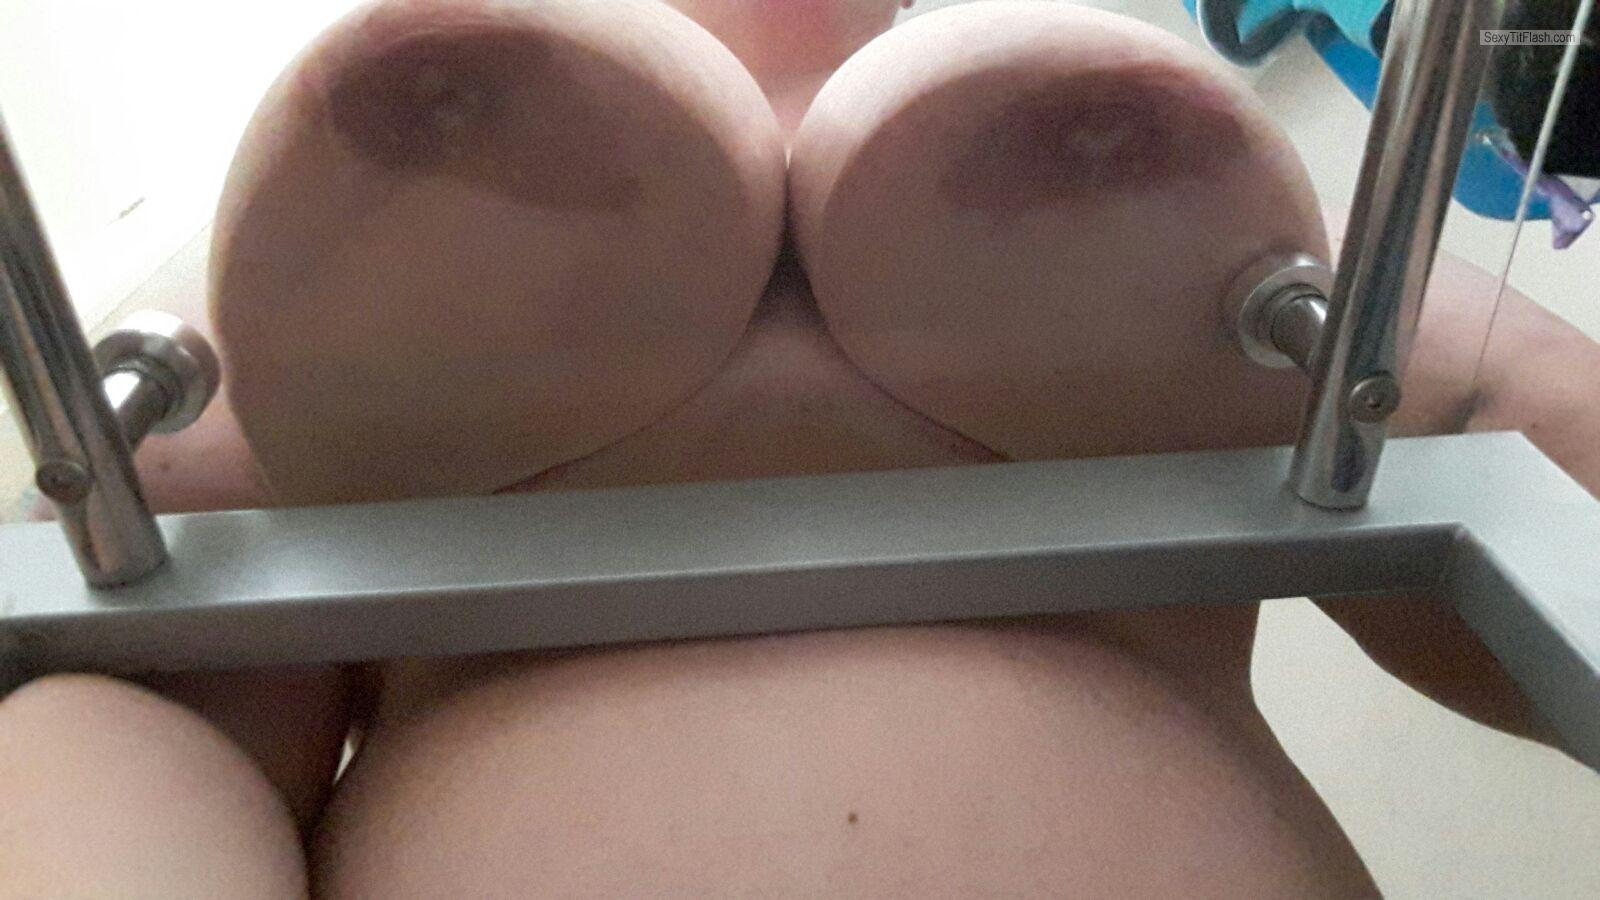 My Very big Tits Selfie by Potterman75